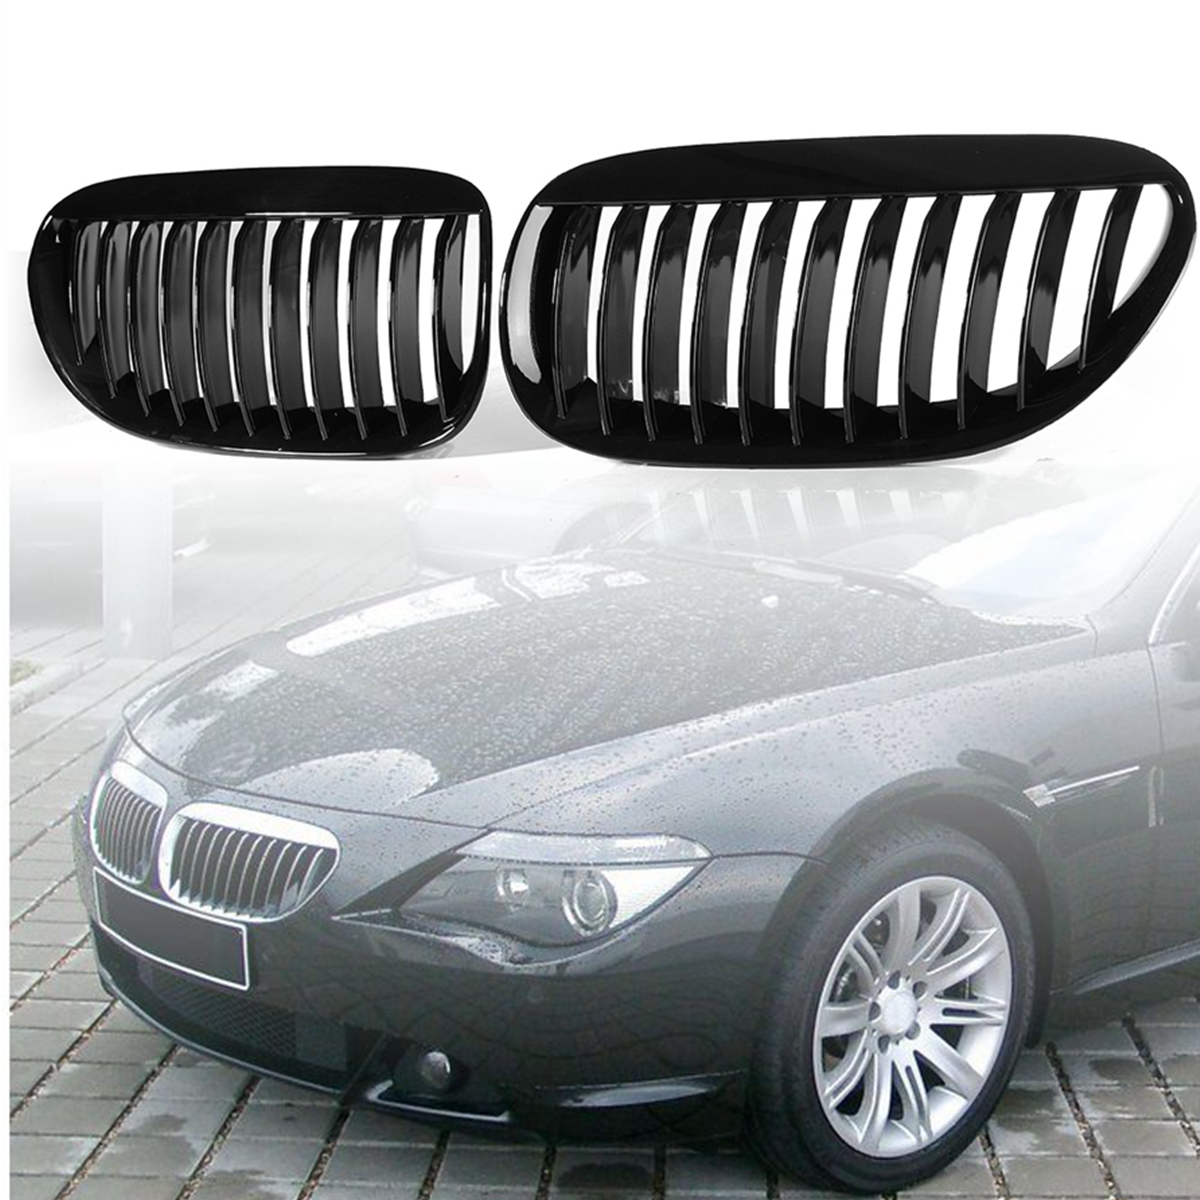 Pair Gloss Black Front Grilles R&L for BMW E63/E64 M6 650Ci 645Ci 2005 2006 2007 2008 2009 2010 1 pair new white front for fender flares for toyota hilux 2005 2006 2007 2008 2009 2010 2011 for fender fares